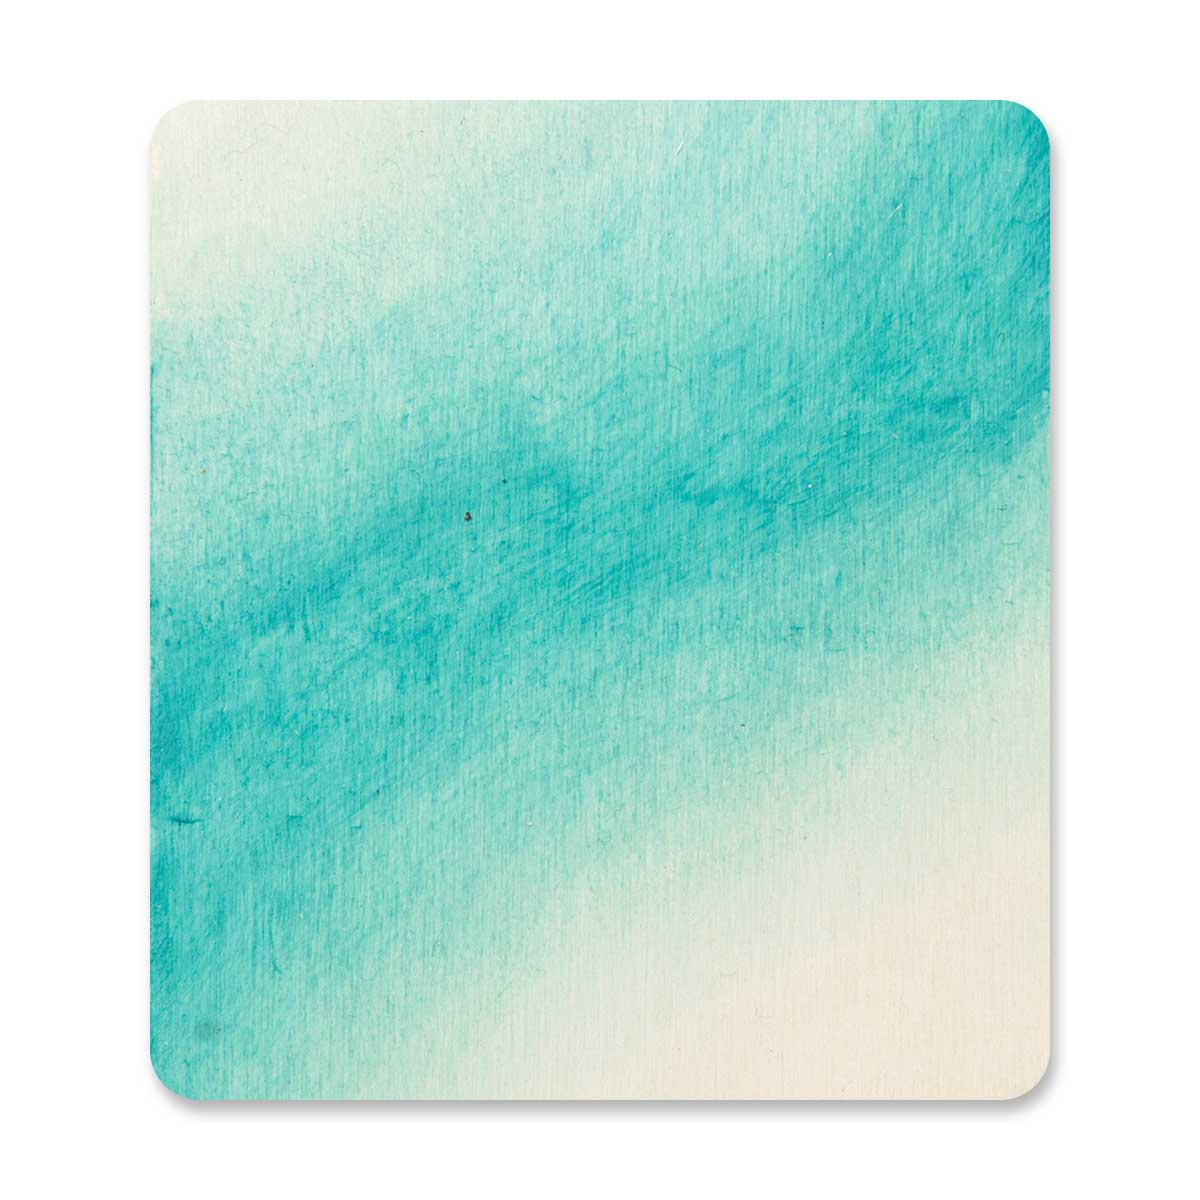 FolkArt ® Watercolor Acrylic Paint™ - Turquoise, 2 oz.